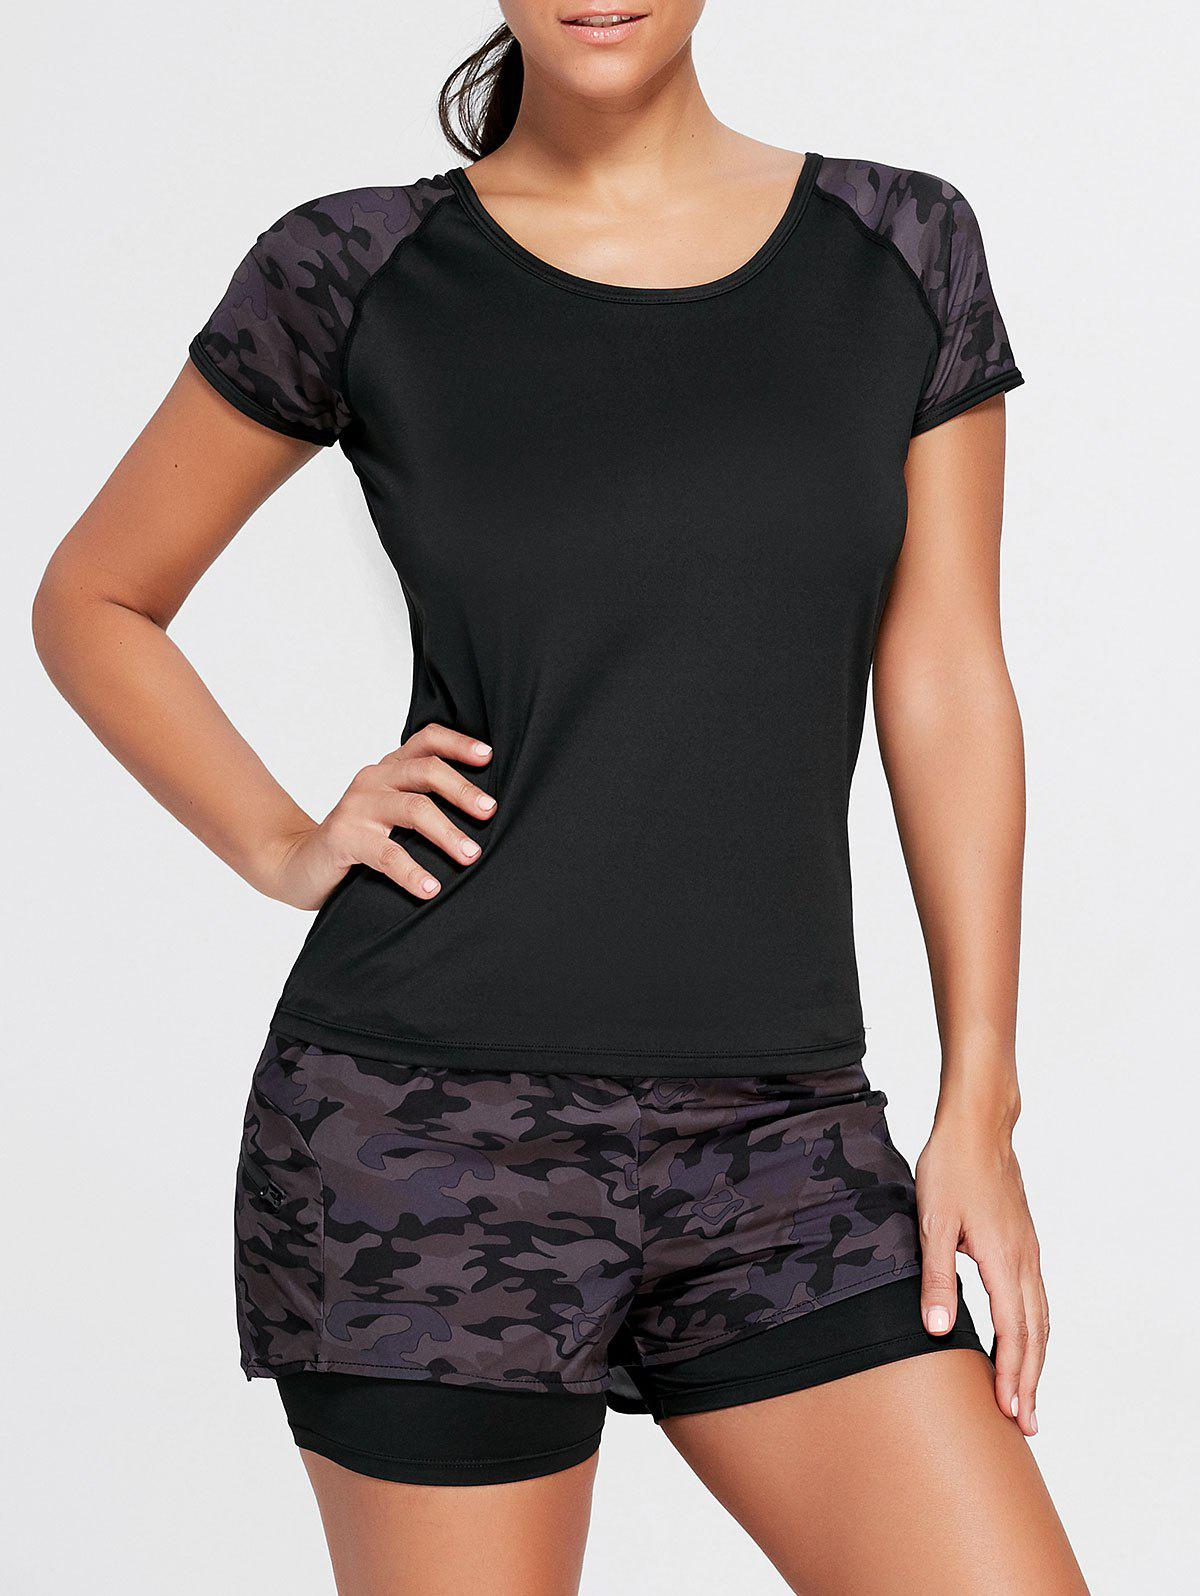 Camo Short Sleeve Sports Raglan Tee - BLACK S